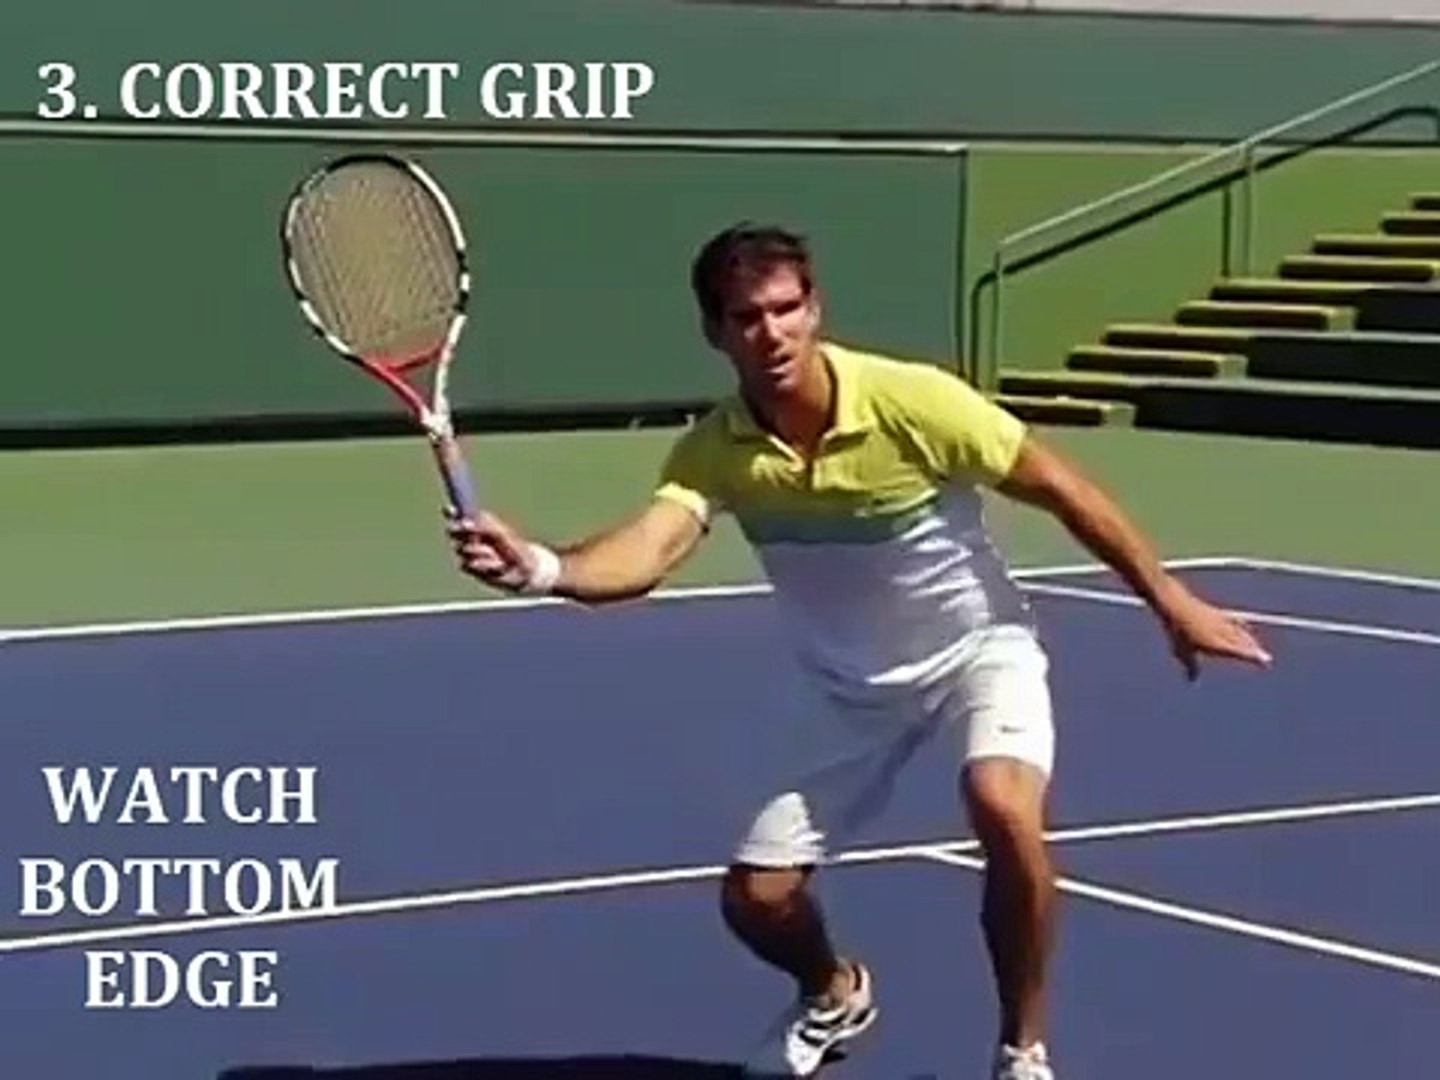 Tennis Volley In Slow Motion 3 Tips To Help You Volley Like Federer Rafter Sampras Video Dailymotion